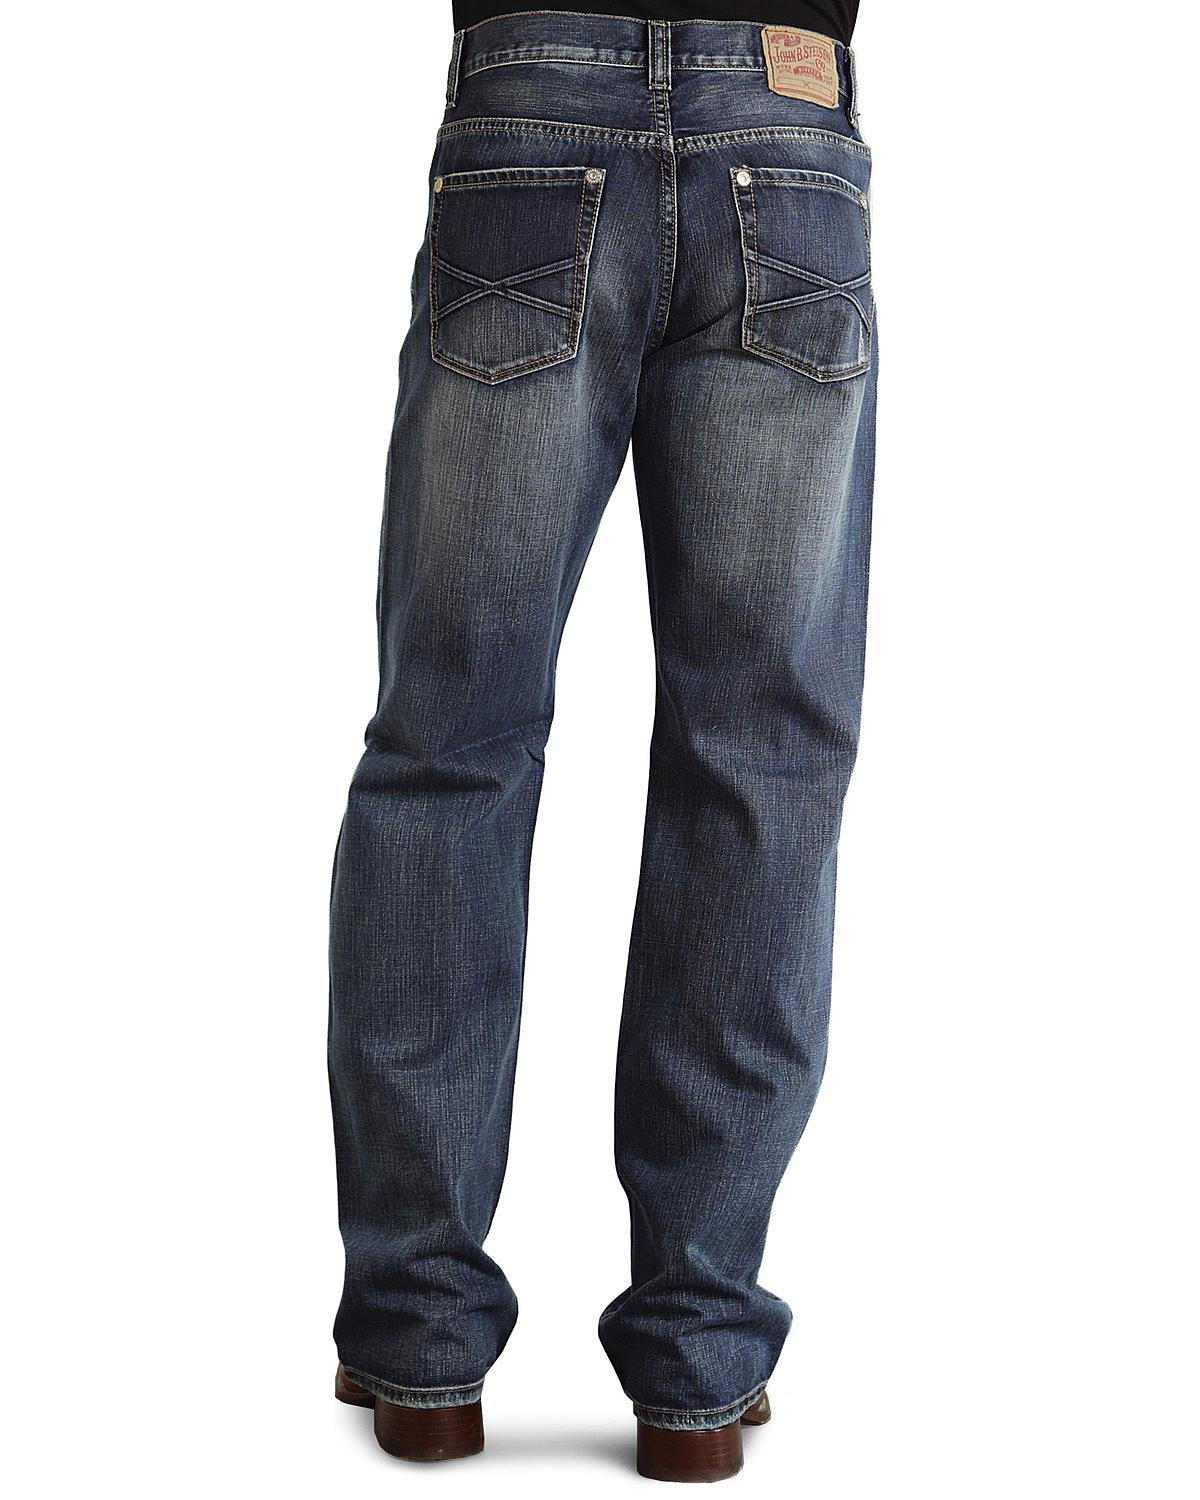 Stetson Modern Fit Embossed  X  Stitched Jeans - Big and Tall Med Wash